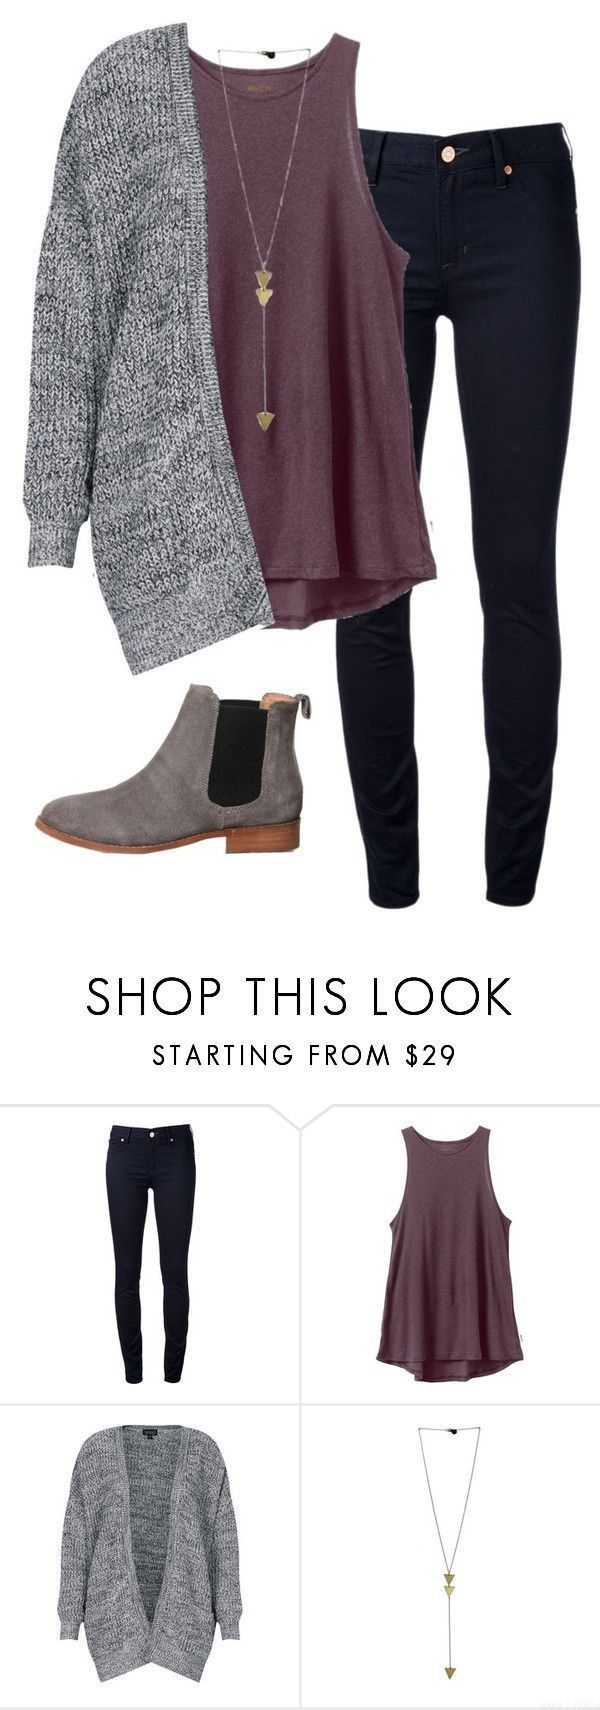 Winter Outfits | Winter Fashion | Winter Coats | Winter Boots. Find the best original fashionable breakthroughs, cold weather coats, new footwear, new knitwear, office outfits, and winter season clothing tips for the autumn and winter time of year. From natural leather and tweed, the essential designs to have on your own radar right now. One can remain really snug and be ultra-hot when the freezing cold settles back in. Winter Fashion Accessories. 17923632 Fall And Winter Outfits 2016. Winter